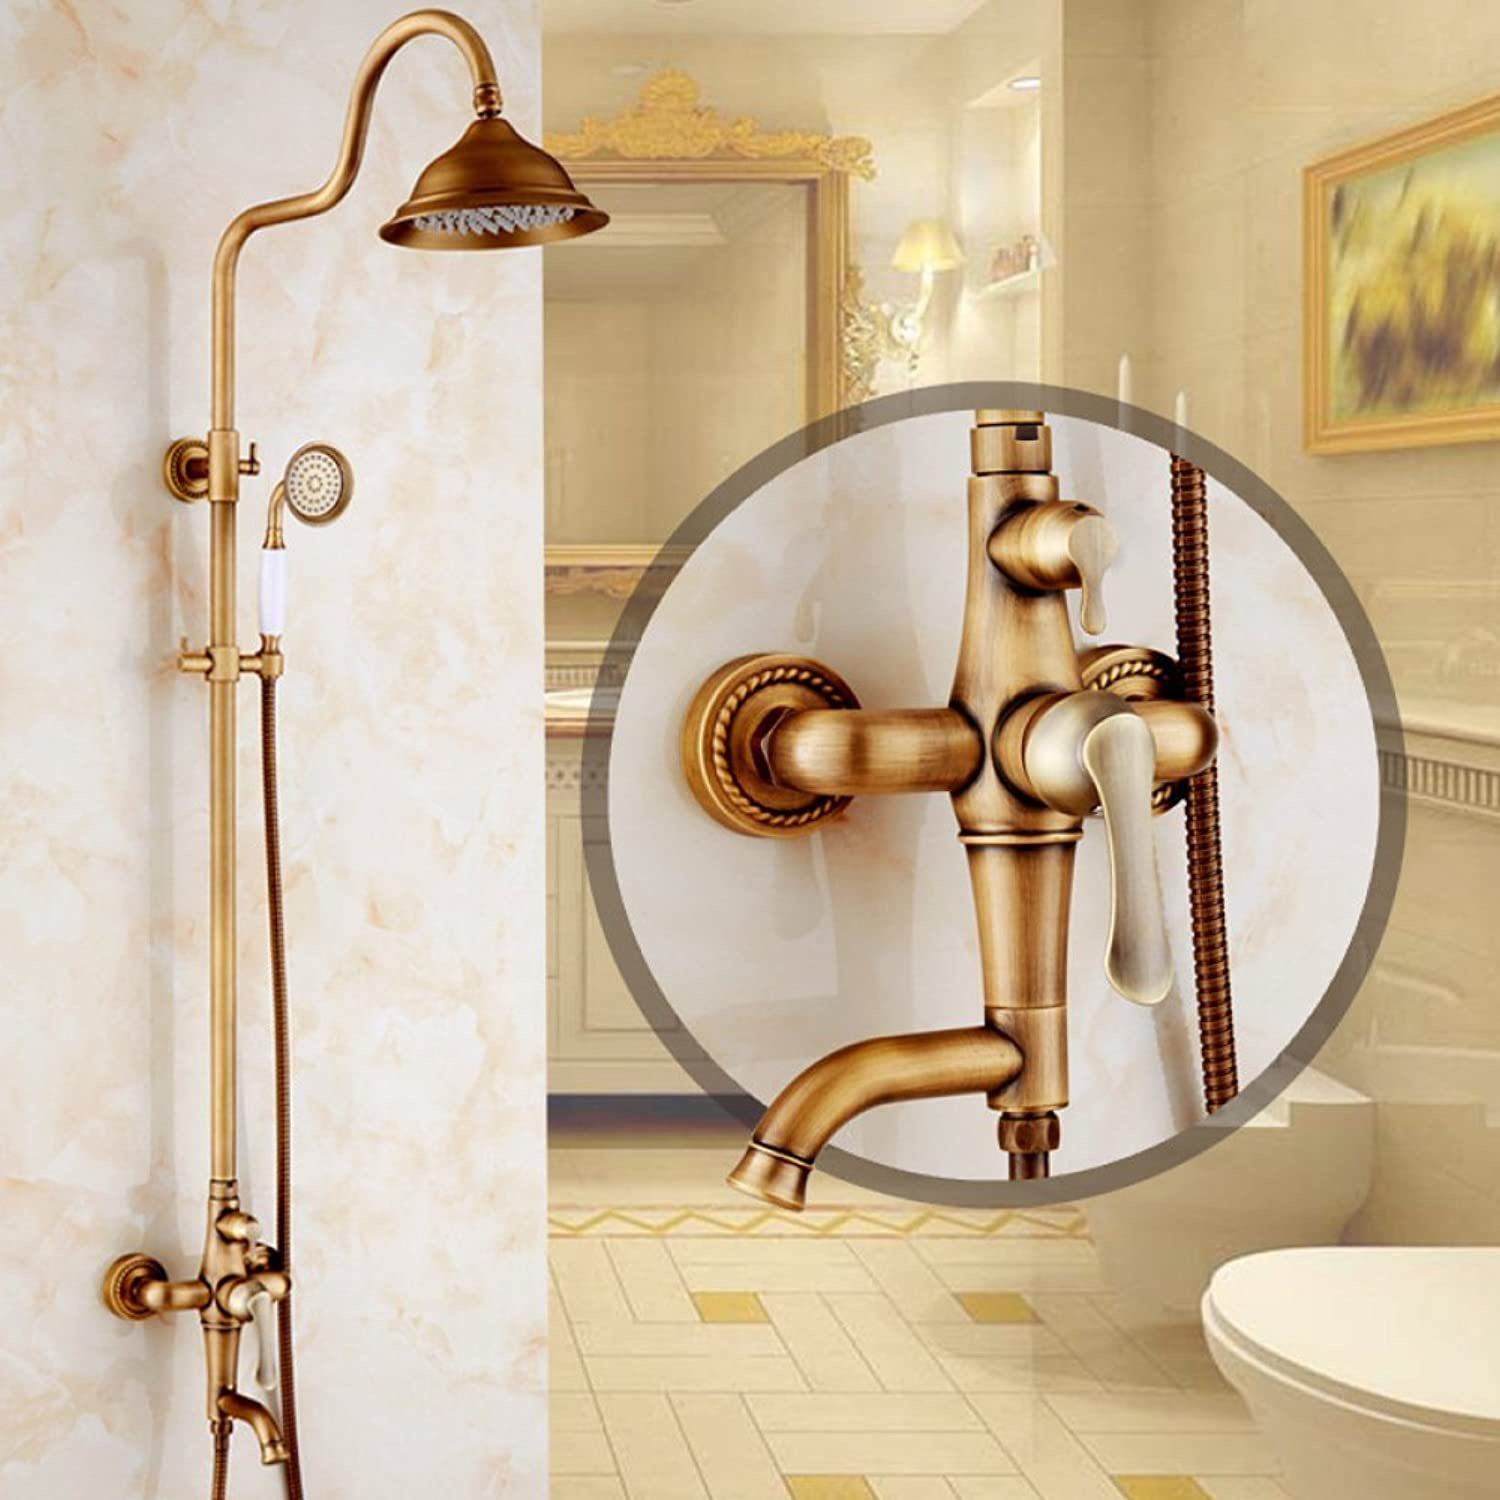 ZHWY all bronze Retro Shower Antique Shower set redatable With lifting Shower Faucet